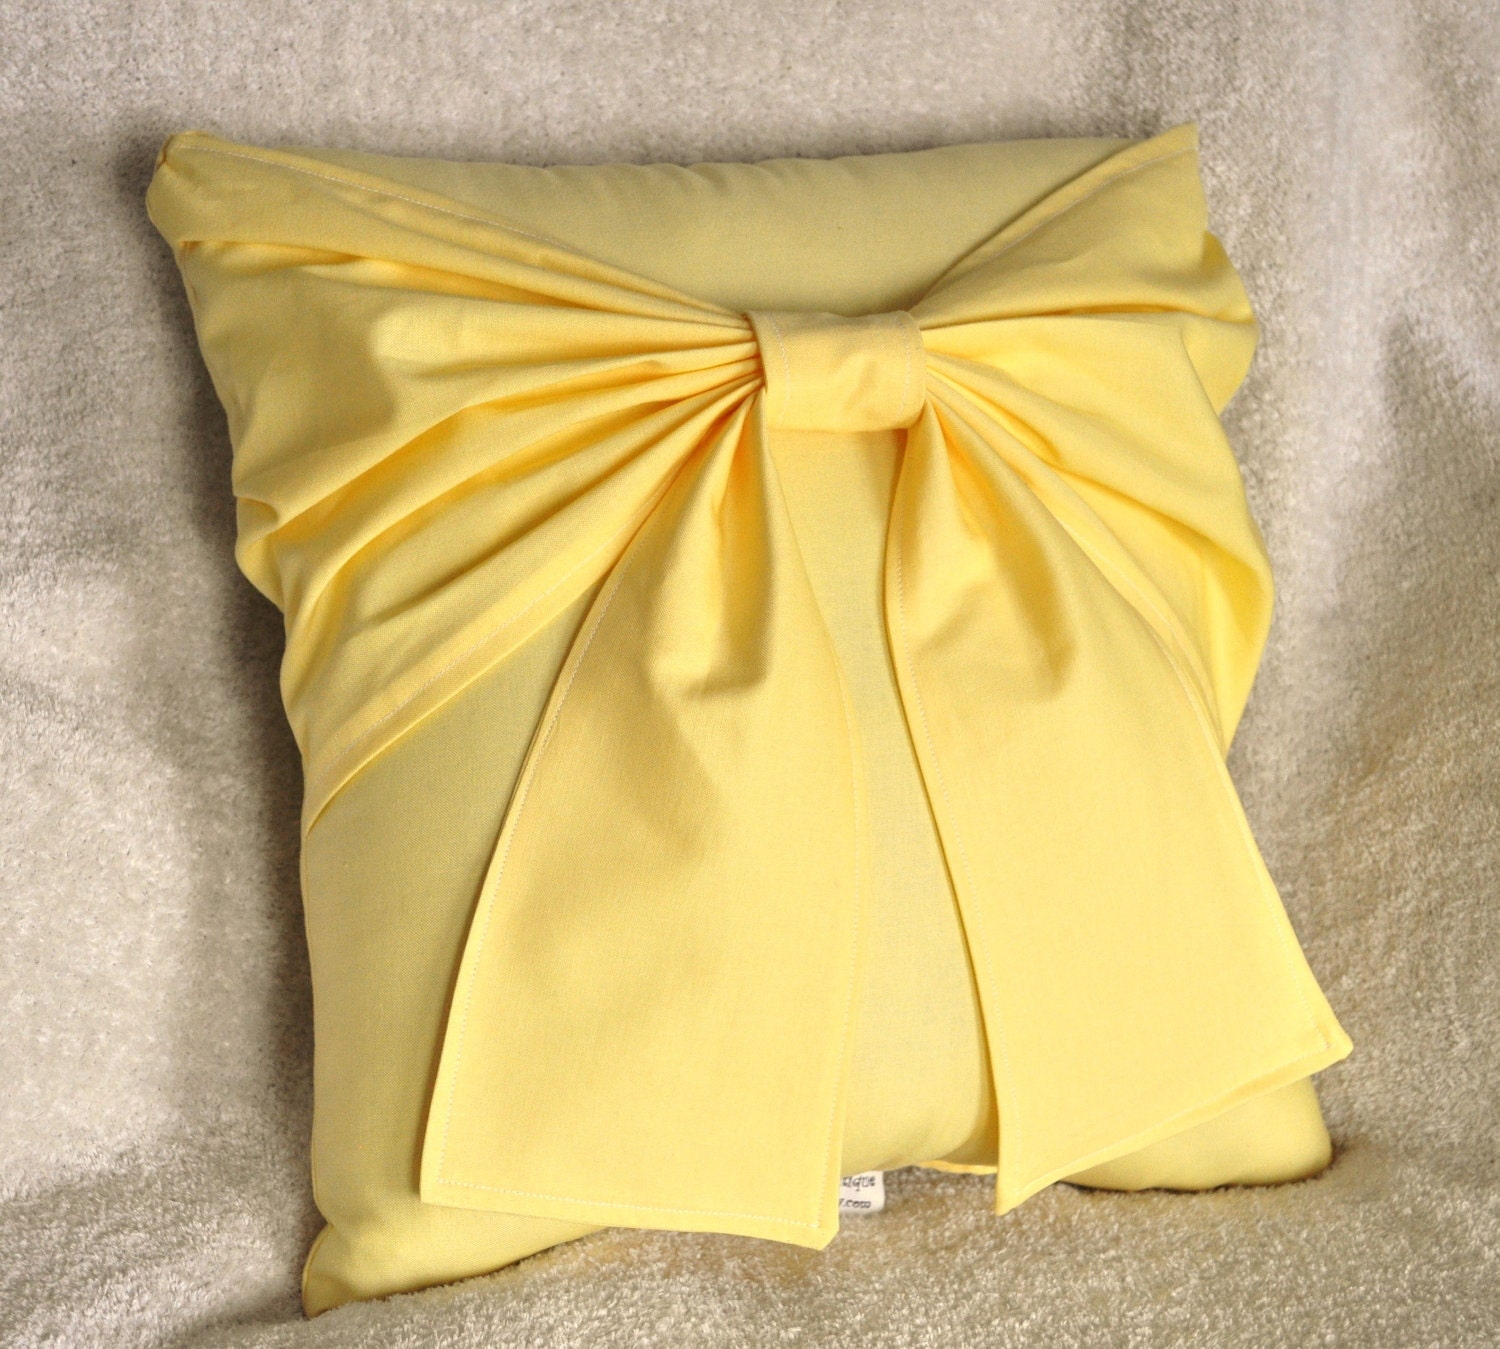 Throw Pillow With Bow : Yellow Bow Pillow Decorative Pillow